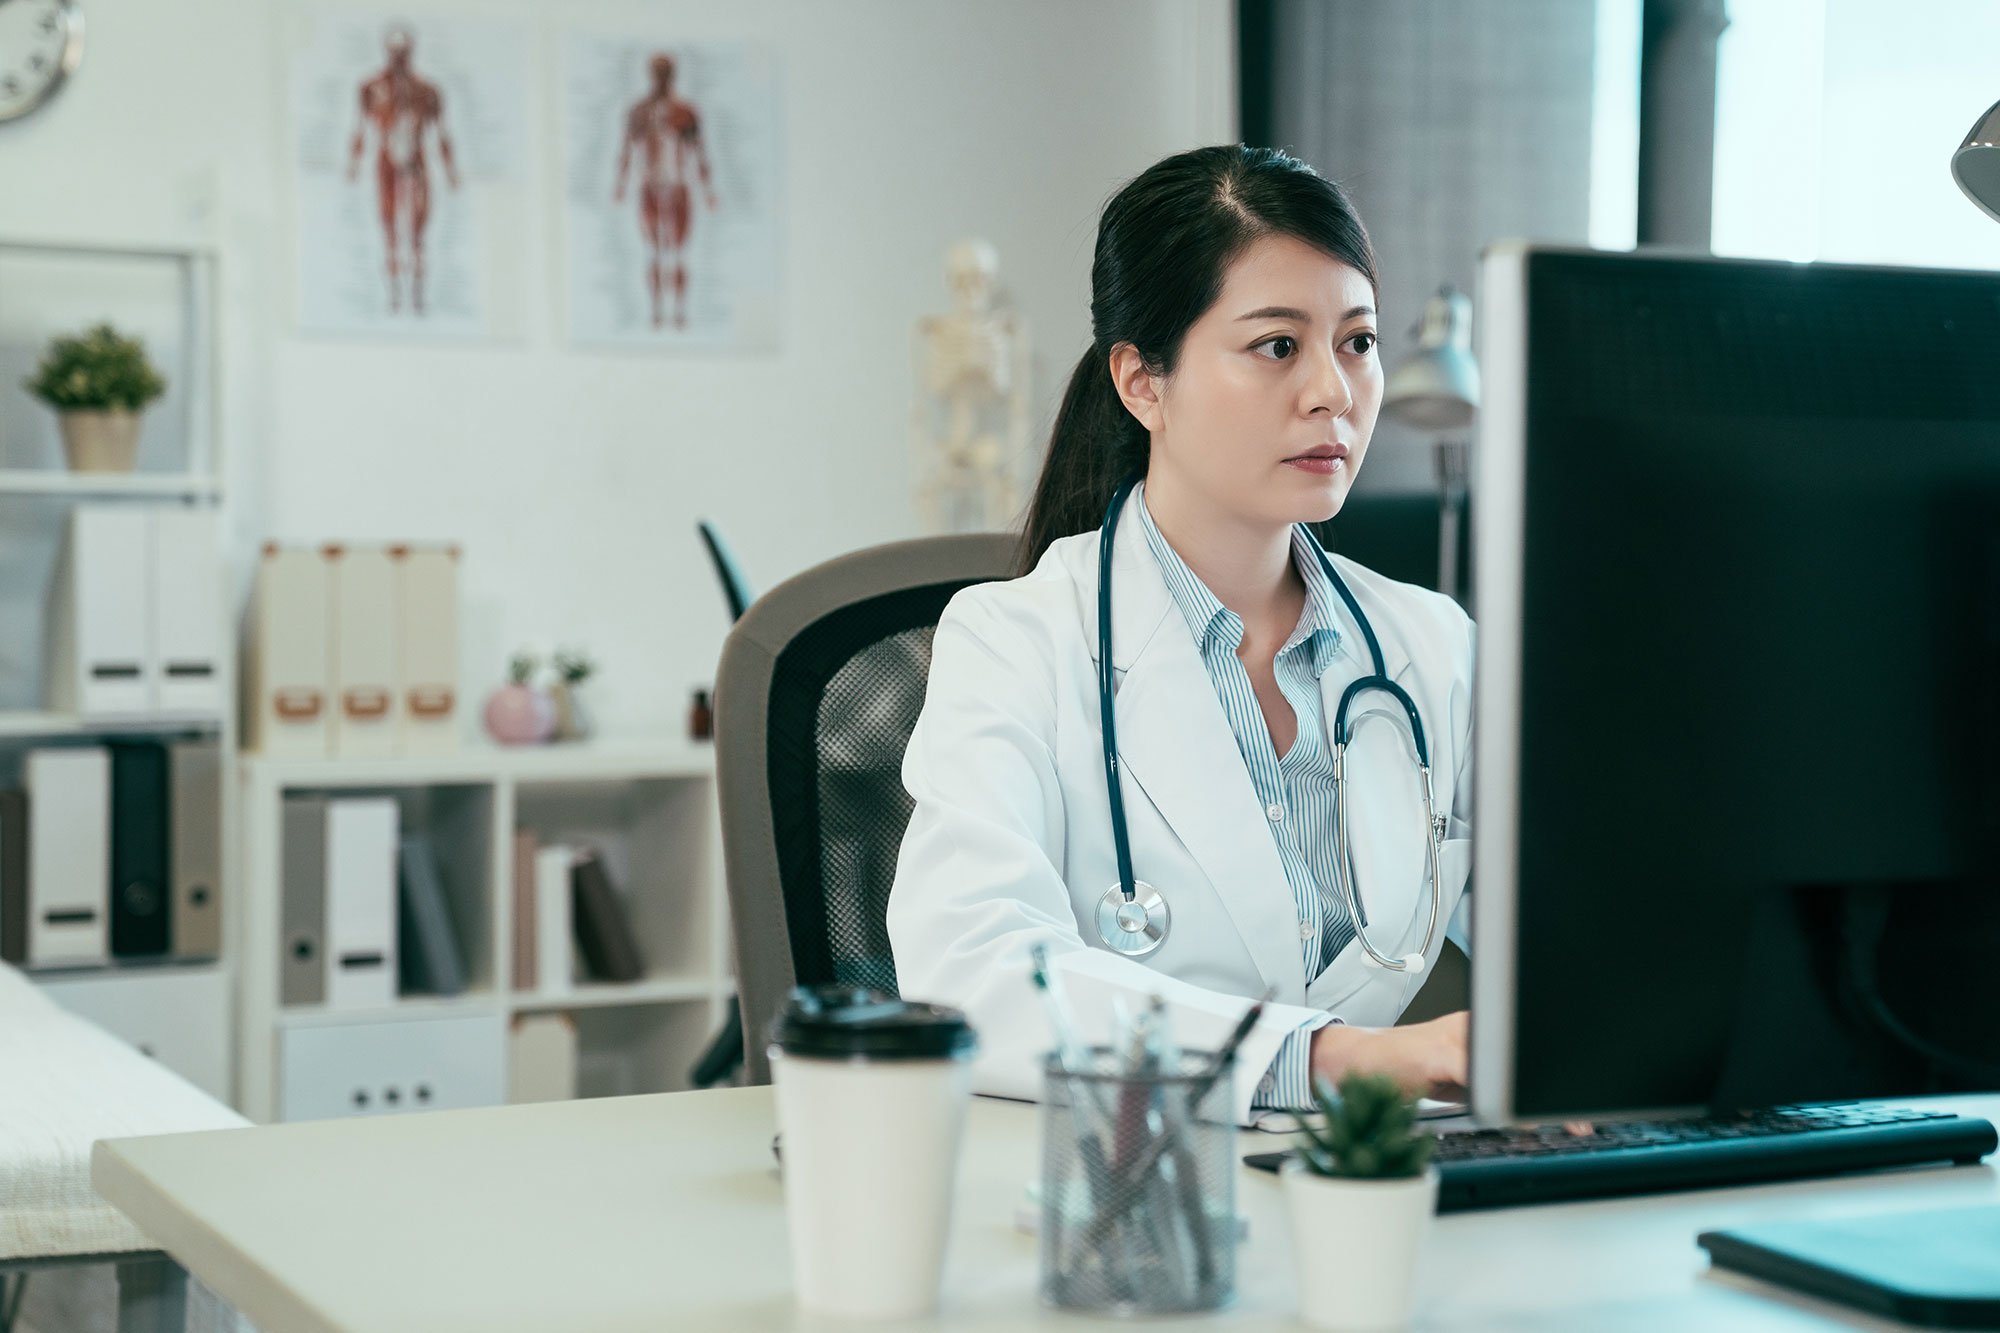 doctor on computer woman